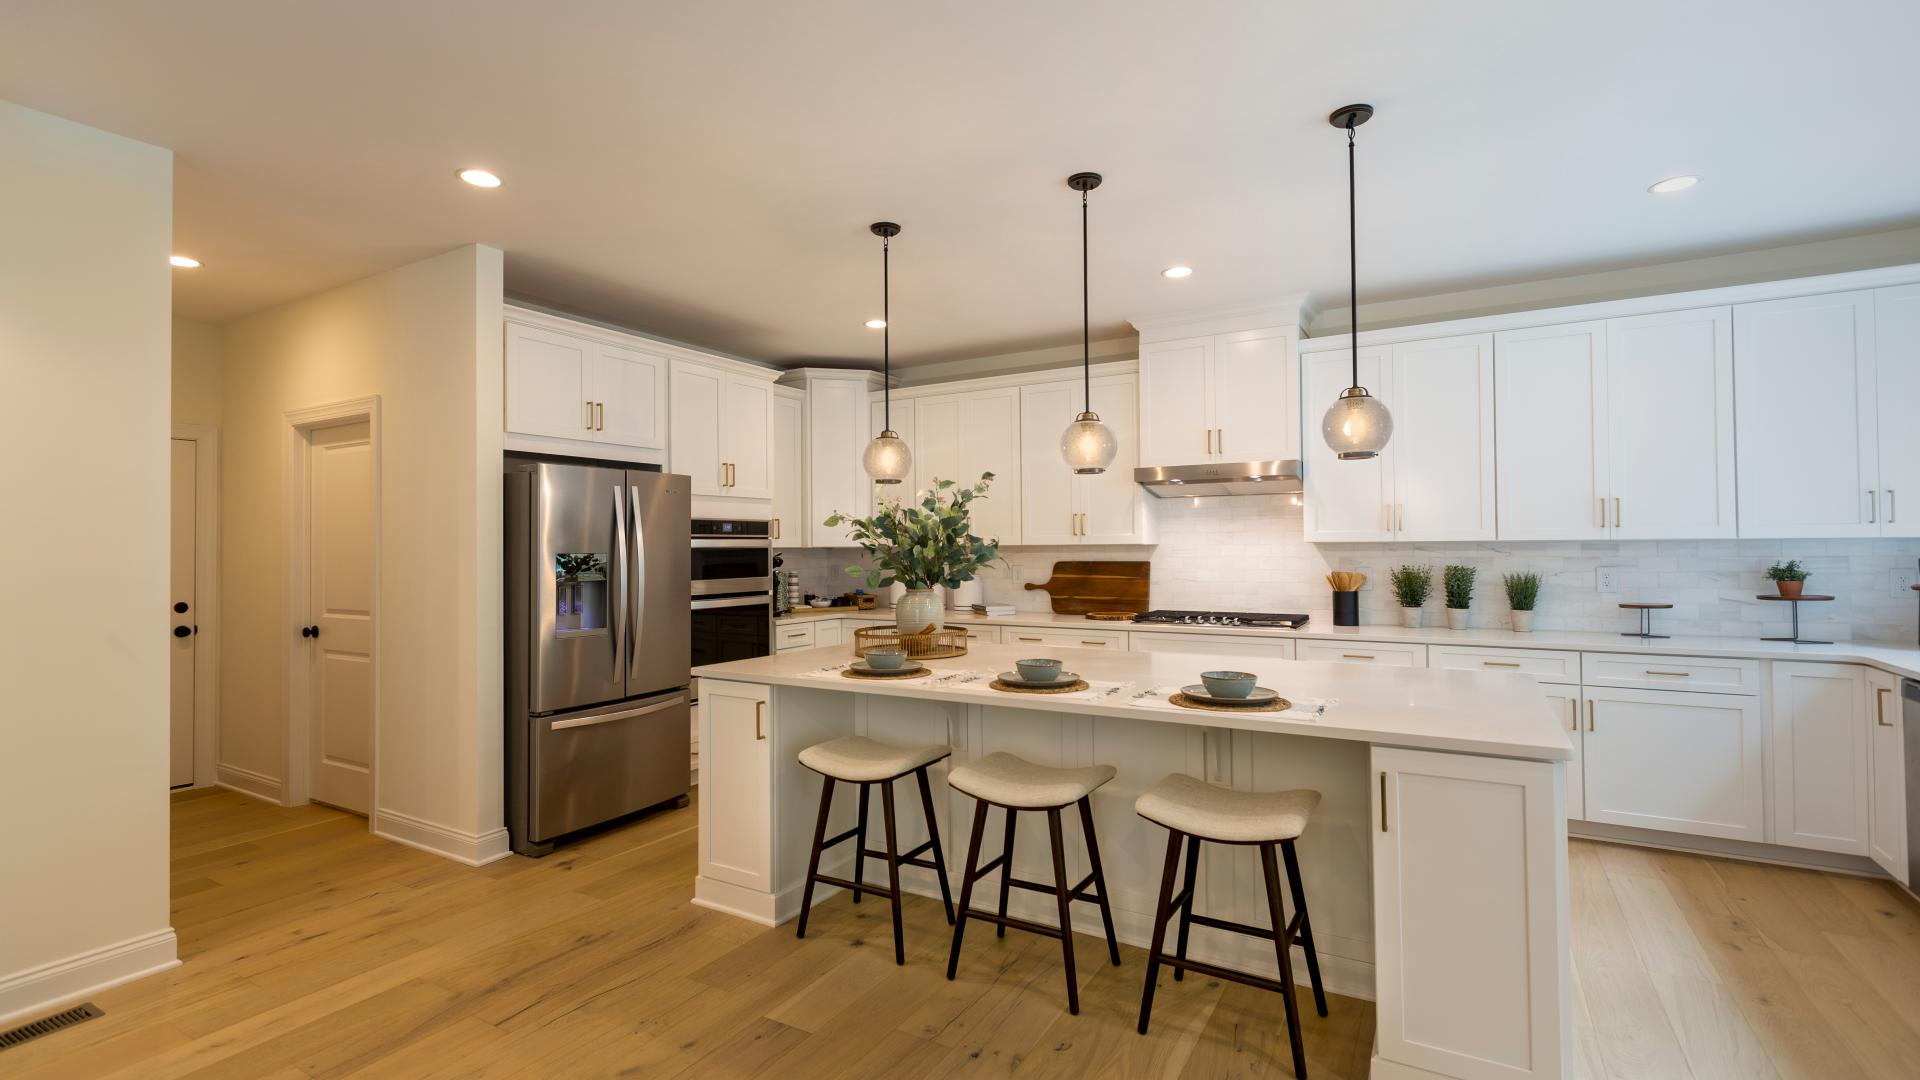 Spacious kitchen with center island and casual dining space